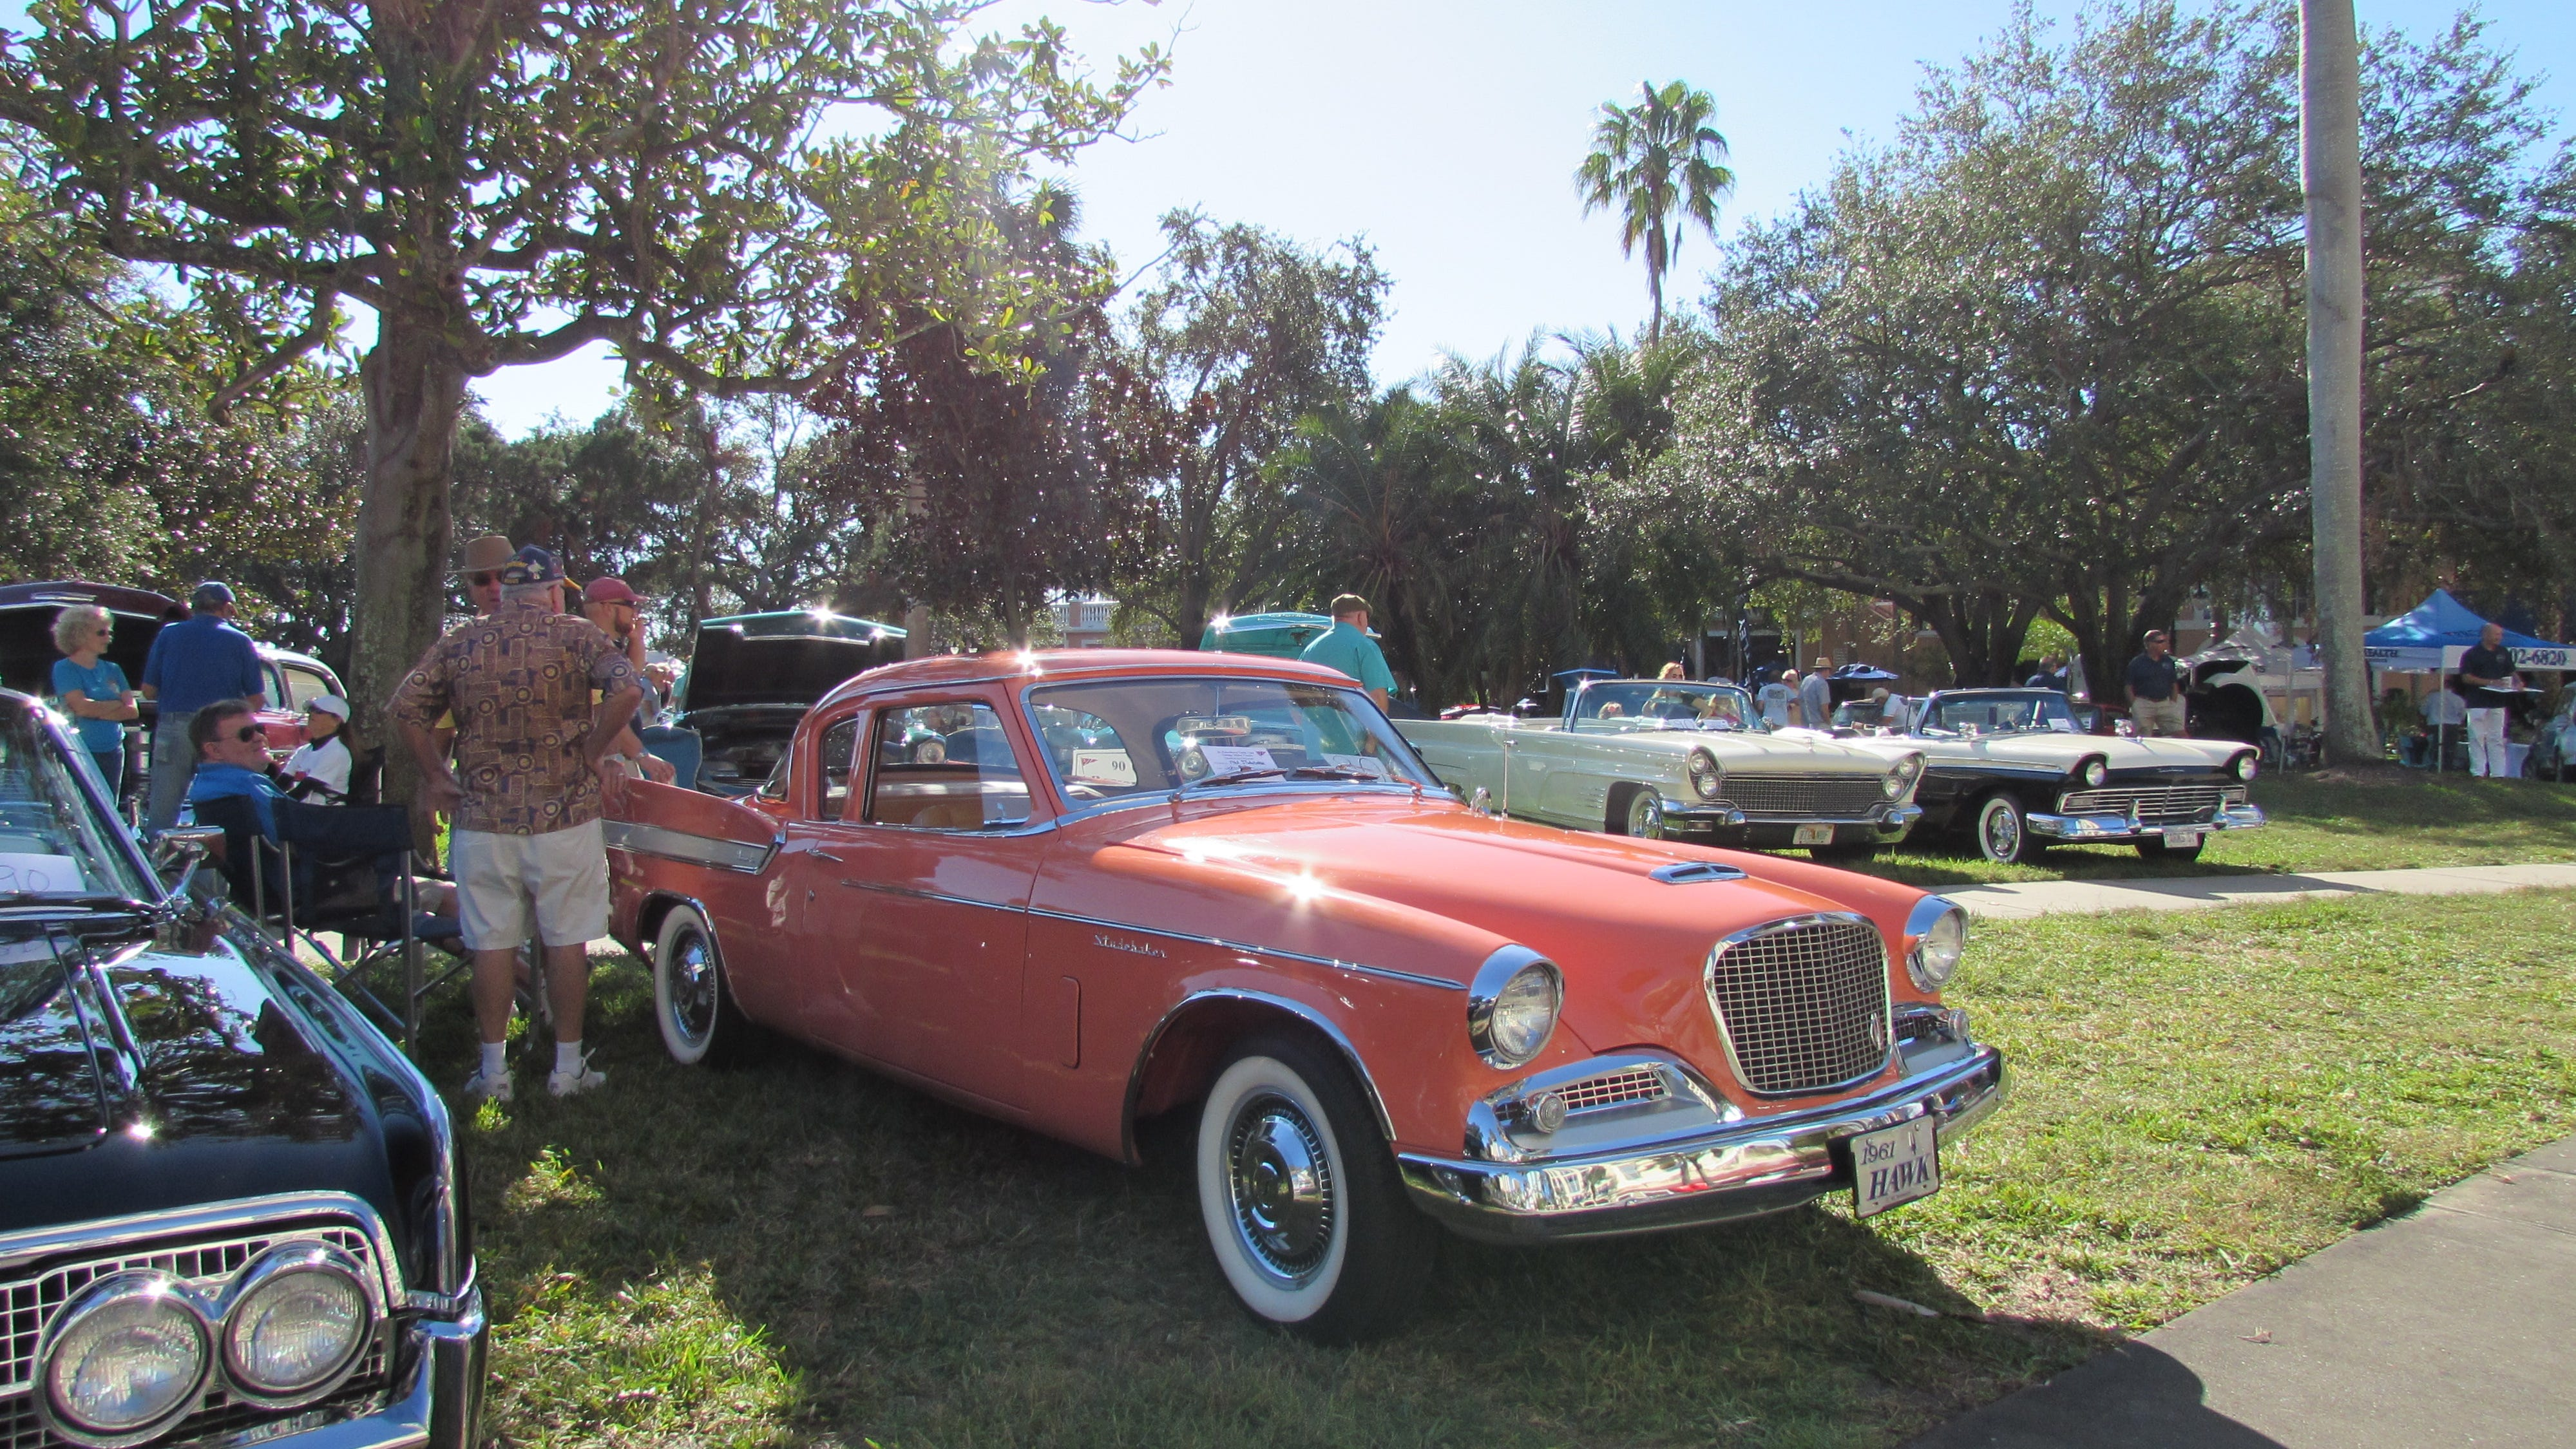 A 1961 Hawk Studebaker on display at the St. Petersburg Yacht Club Vintage Motor Classic.